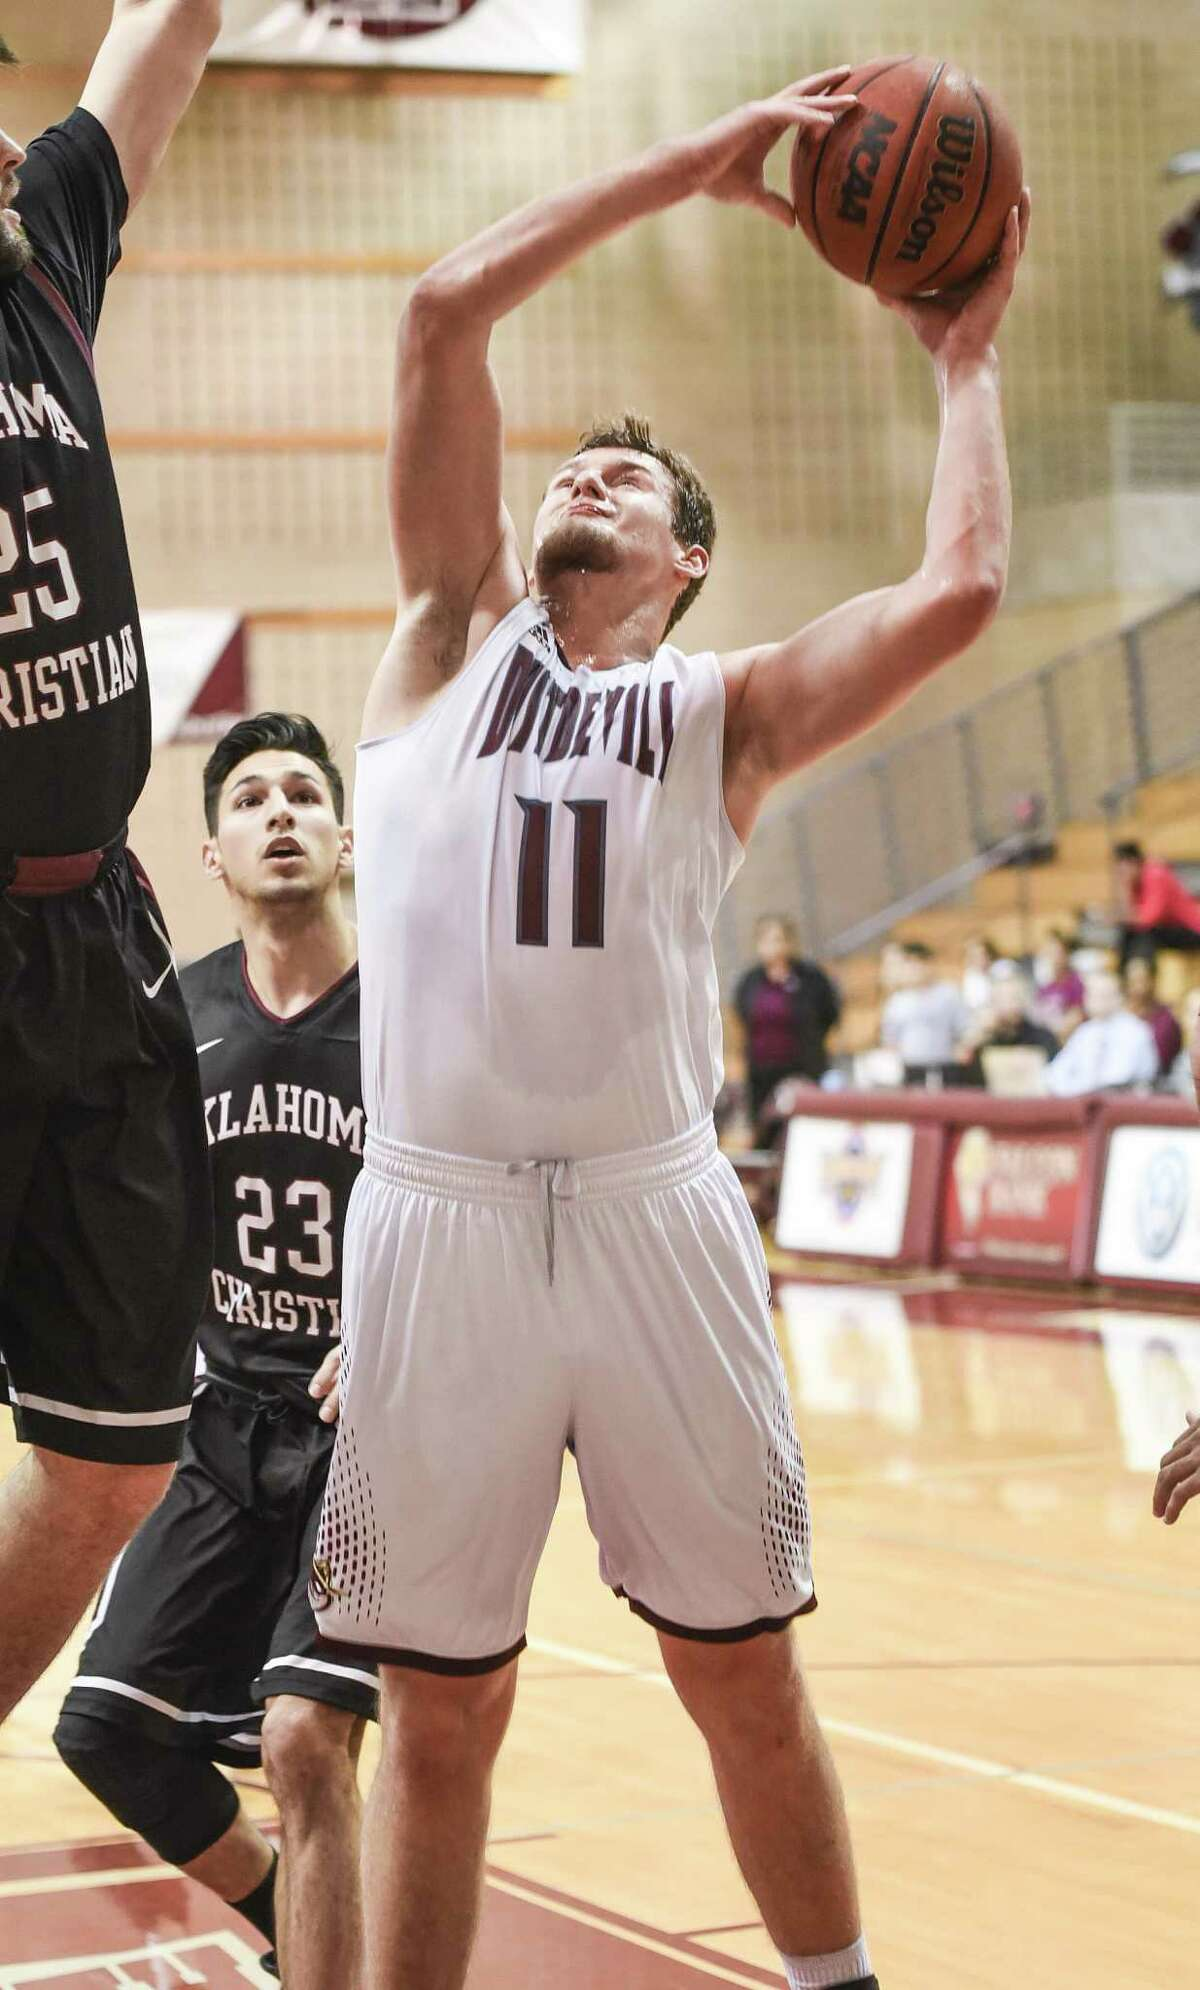 TAMIU forward Dan Milota is back this week after missing the last five games with a torn MCL. The senior is one of three that will be on the court in Laredo for the final time this week as the Dusdevils play their last two home games of the season against Arkansas-Fort Smith Thursday and Rogers State Saturday.